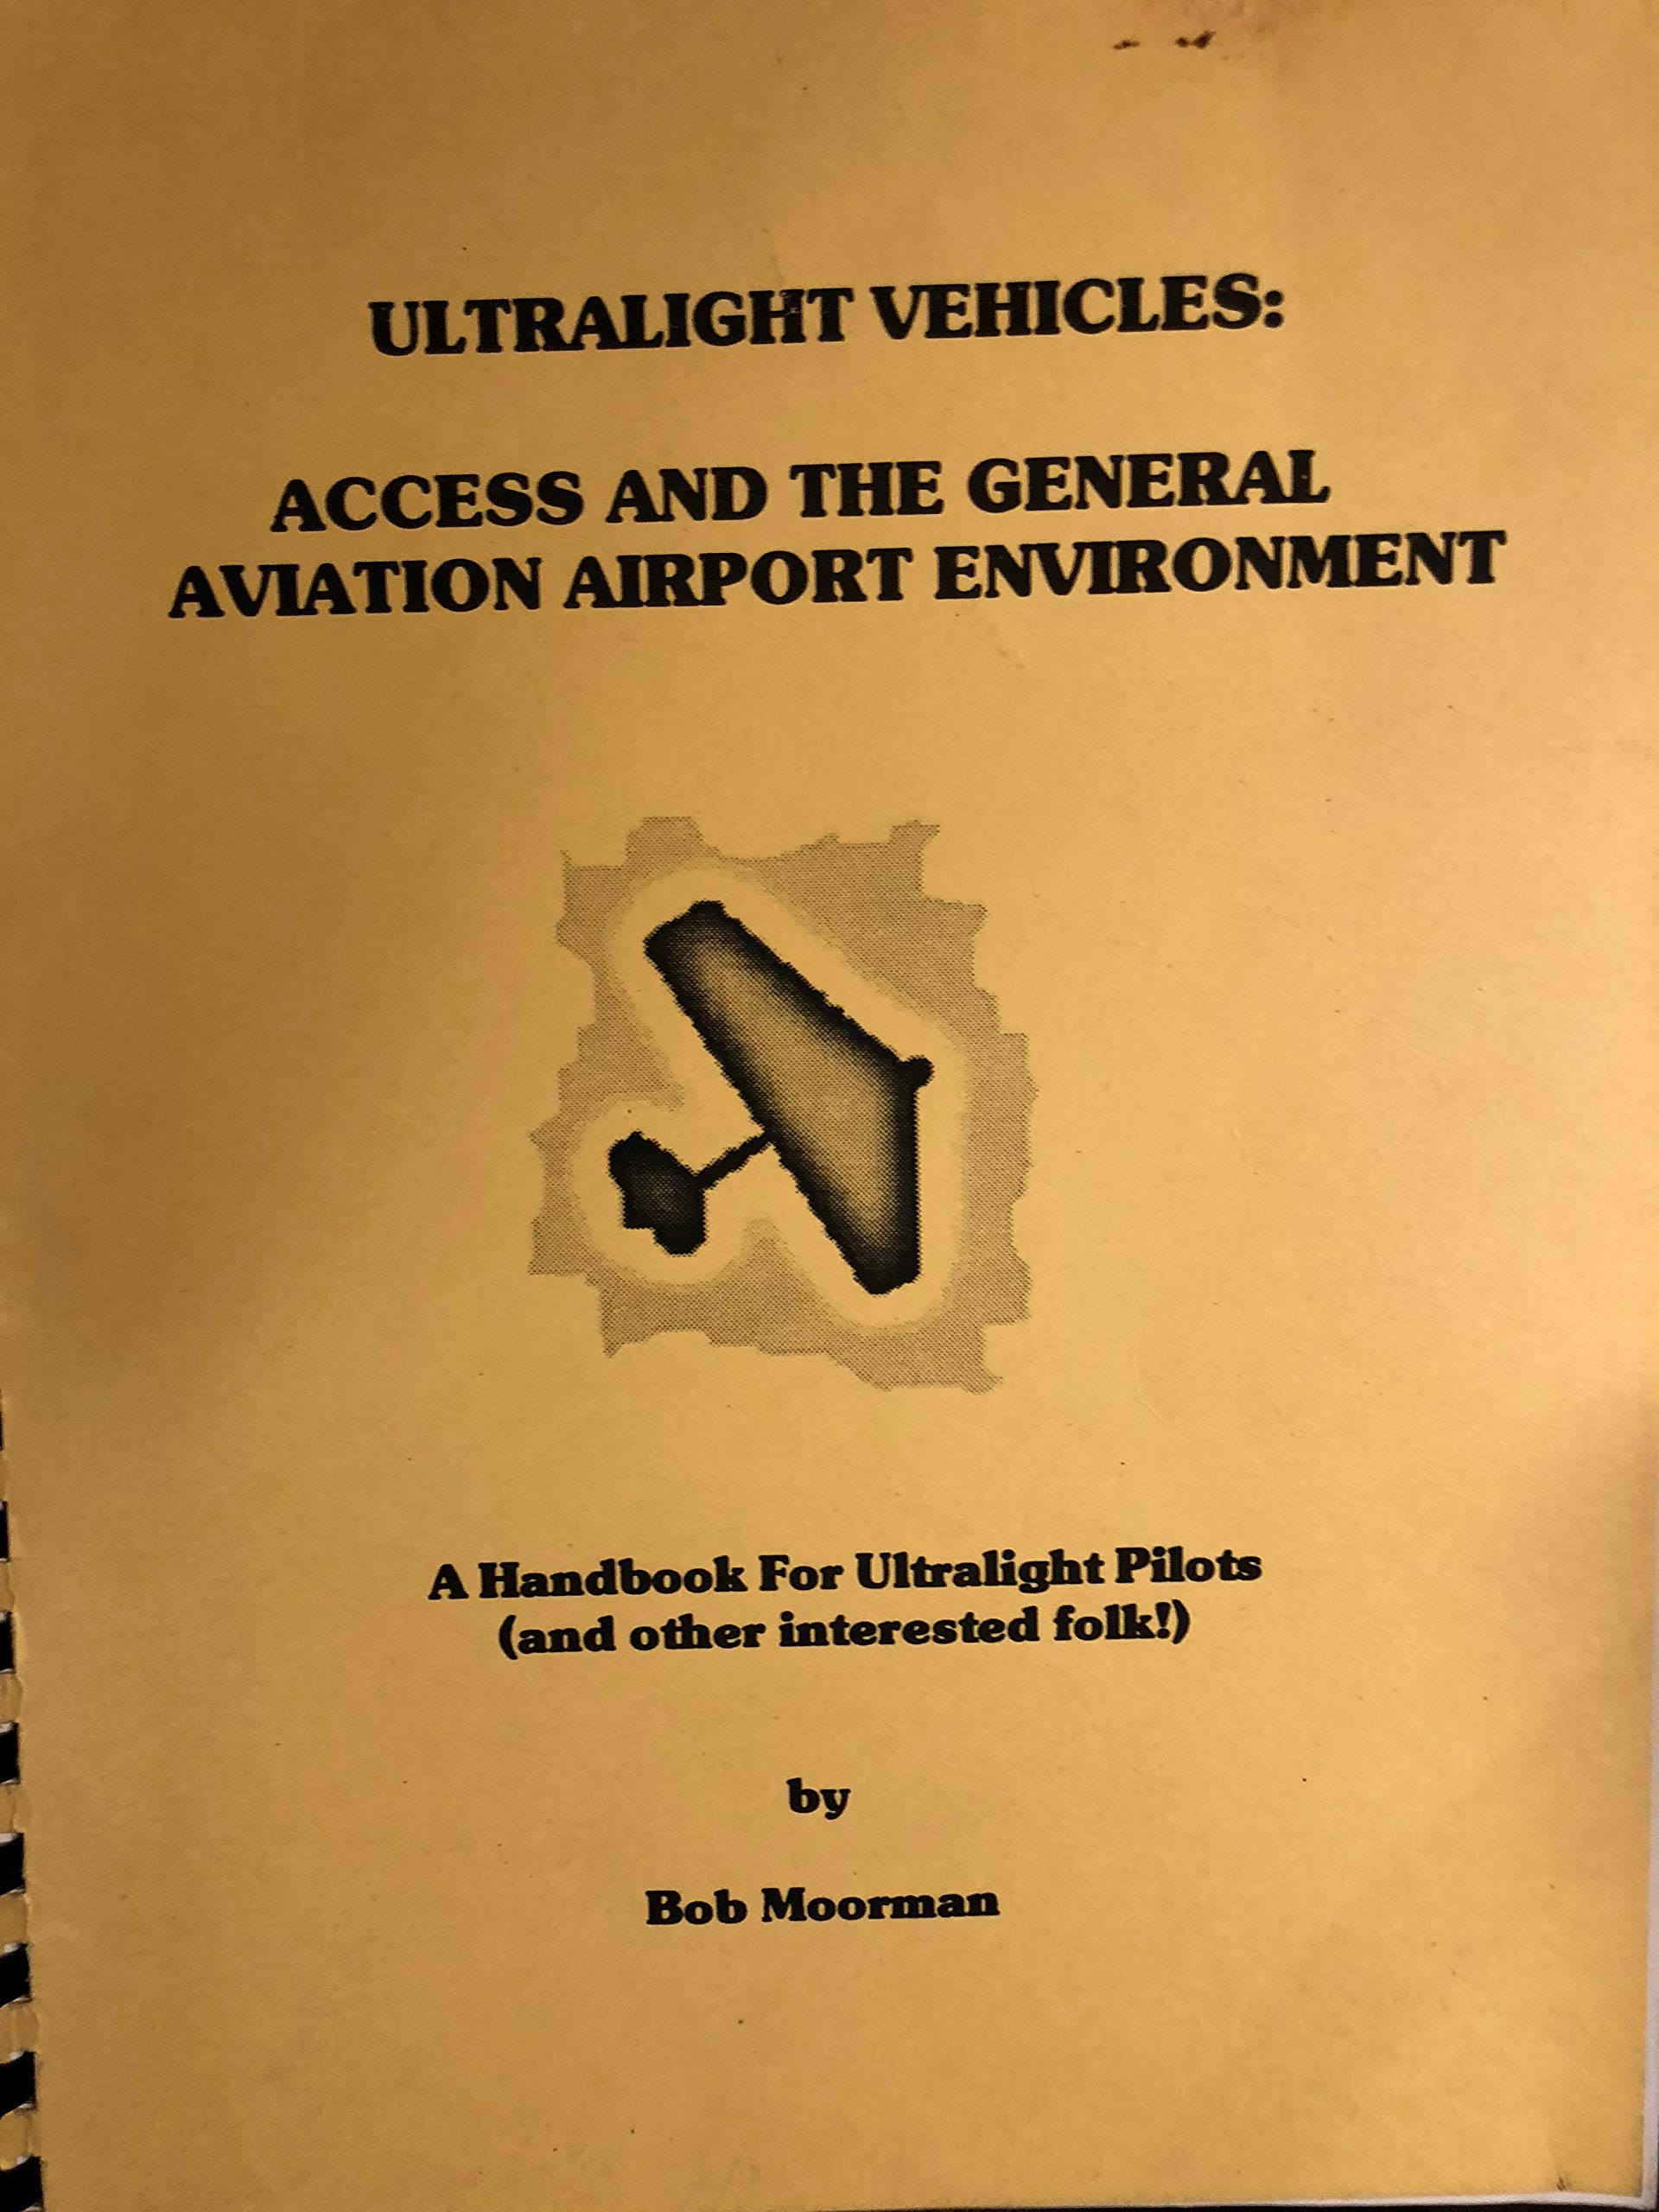 Ultralight Vehicles: Access and the General Aviation Airport